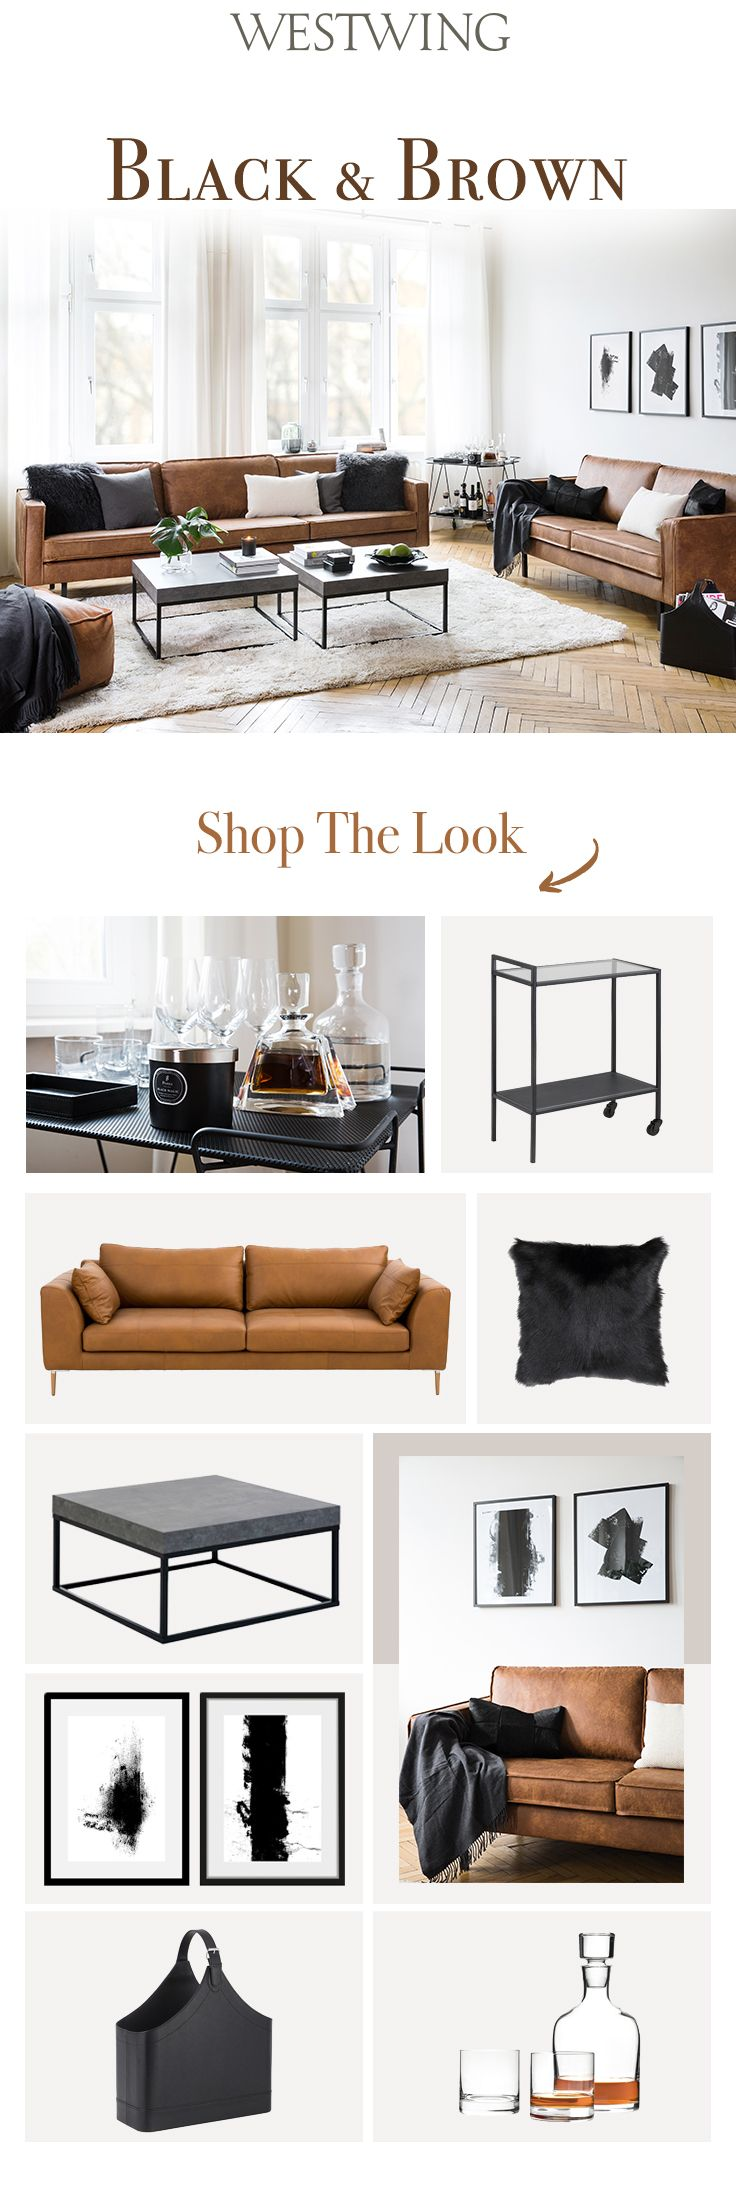 Ledercouch Cognac So Funktioniert Der Look »black & Brown«: Trendy Und Doch